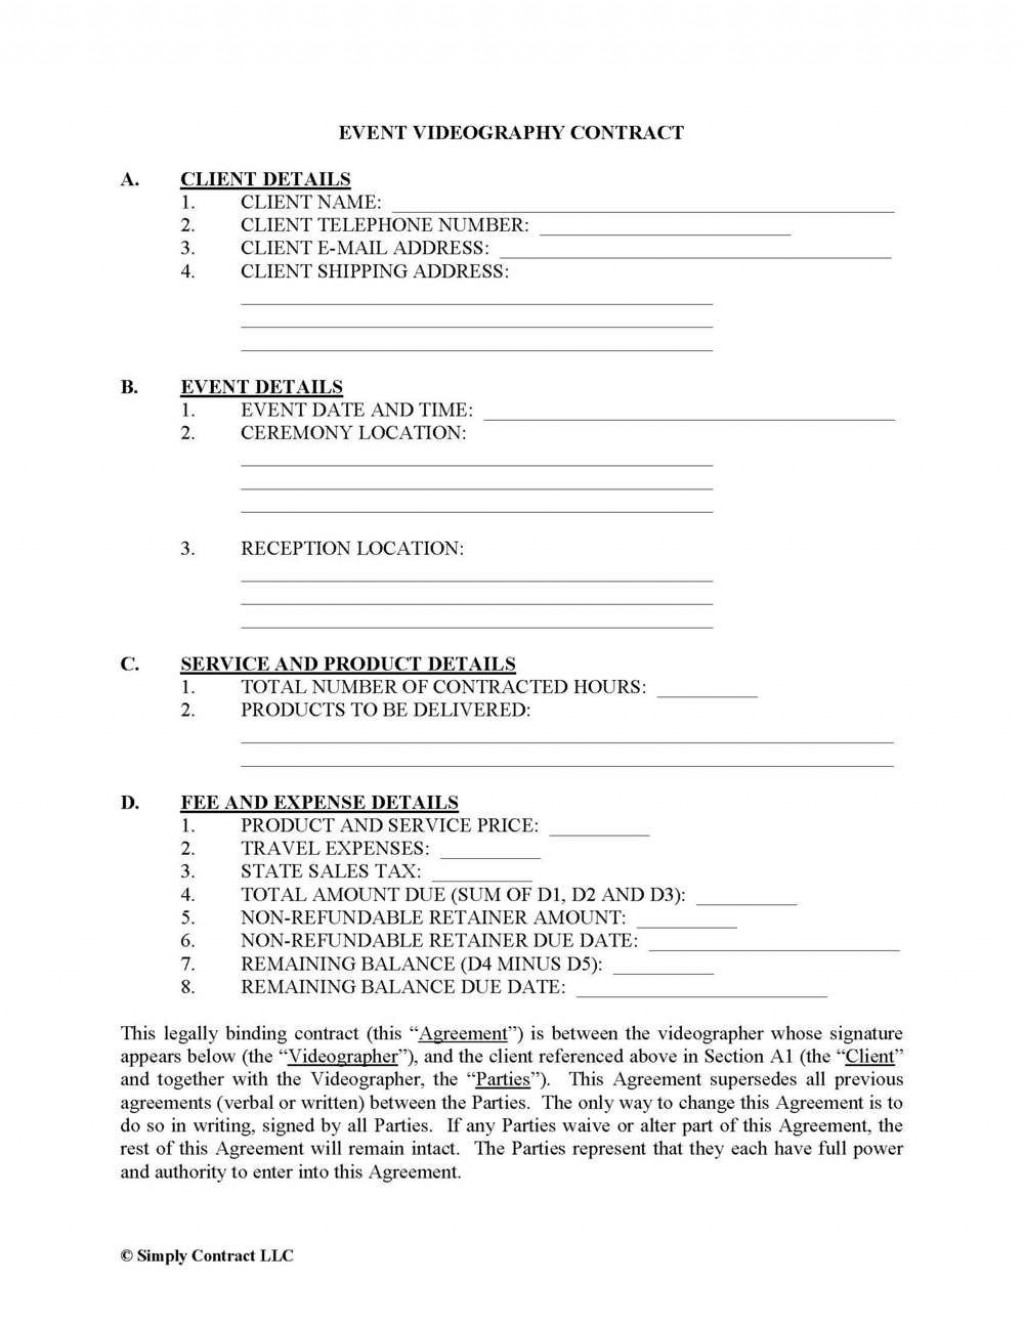 008 Unique Wedding Videographer Contract Template Picture  Videography PdfLarge